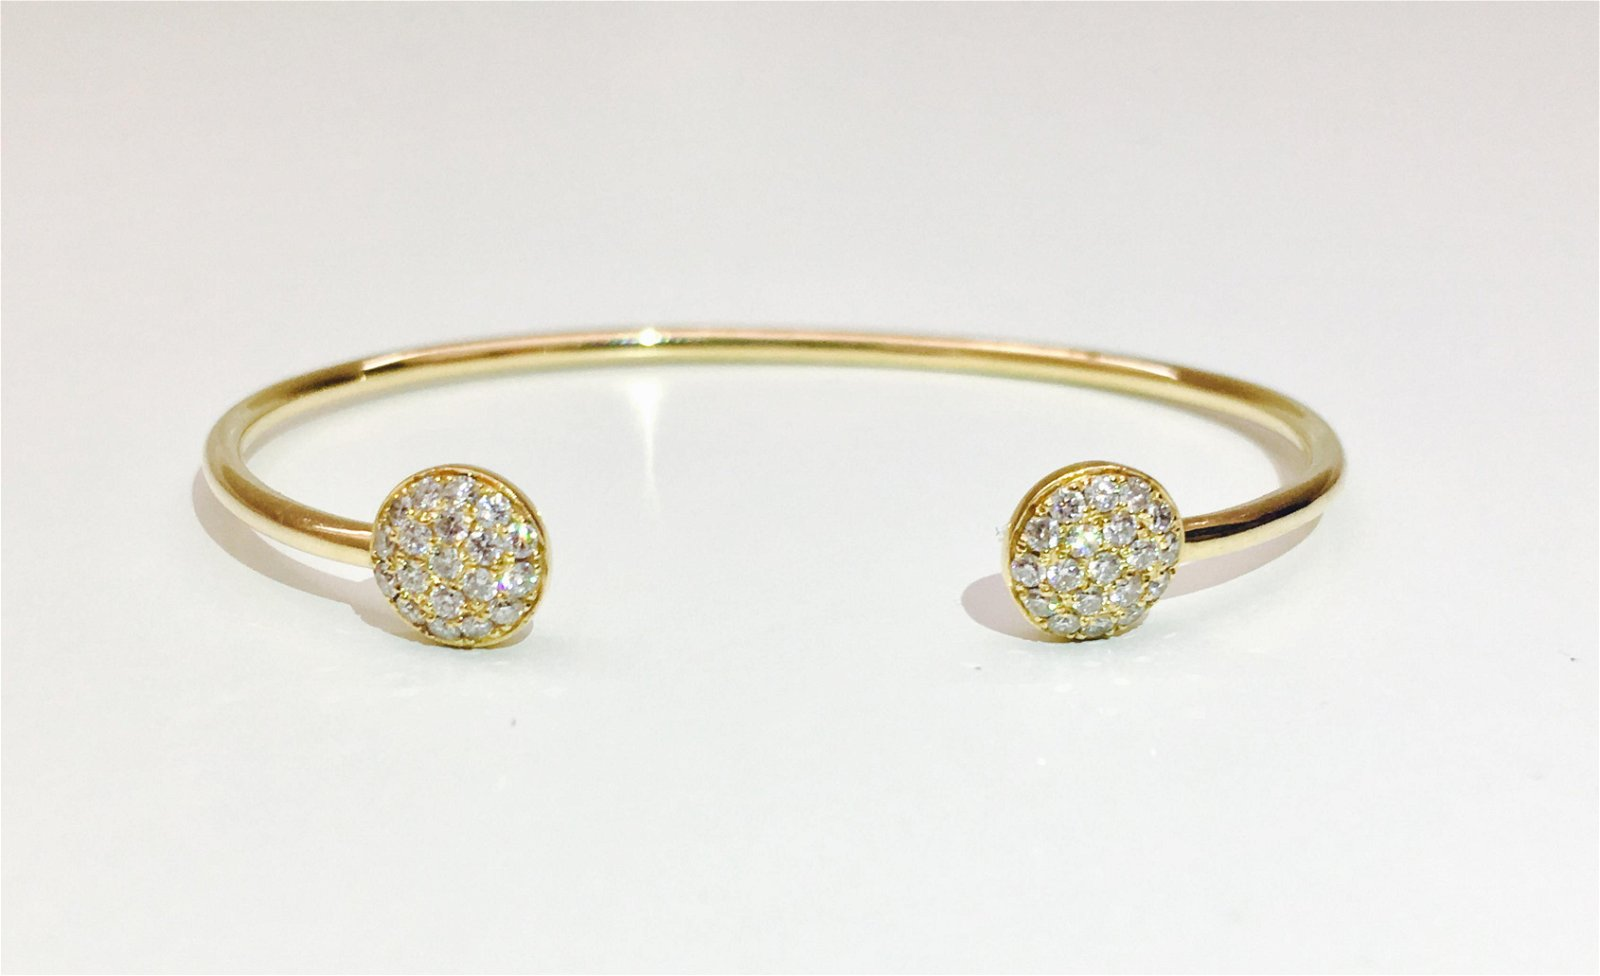 18k Yellow Gold DIAMOND BANGLE / BRACELET